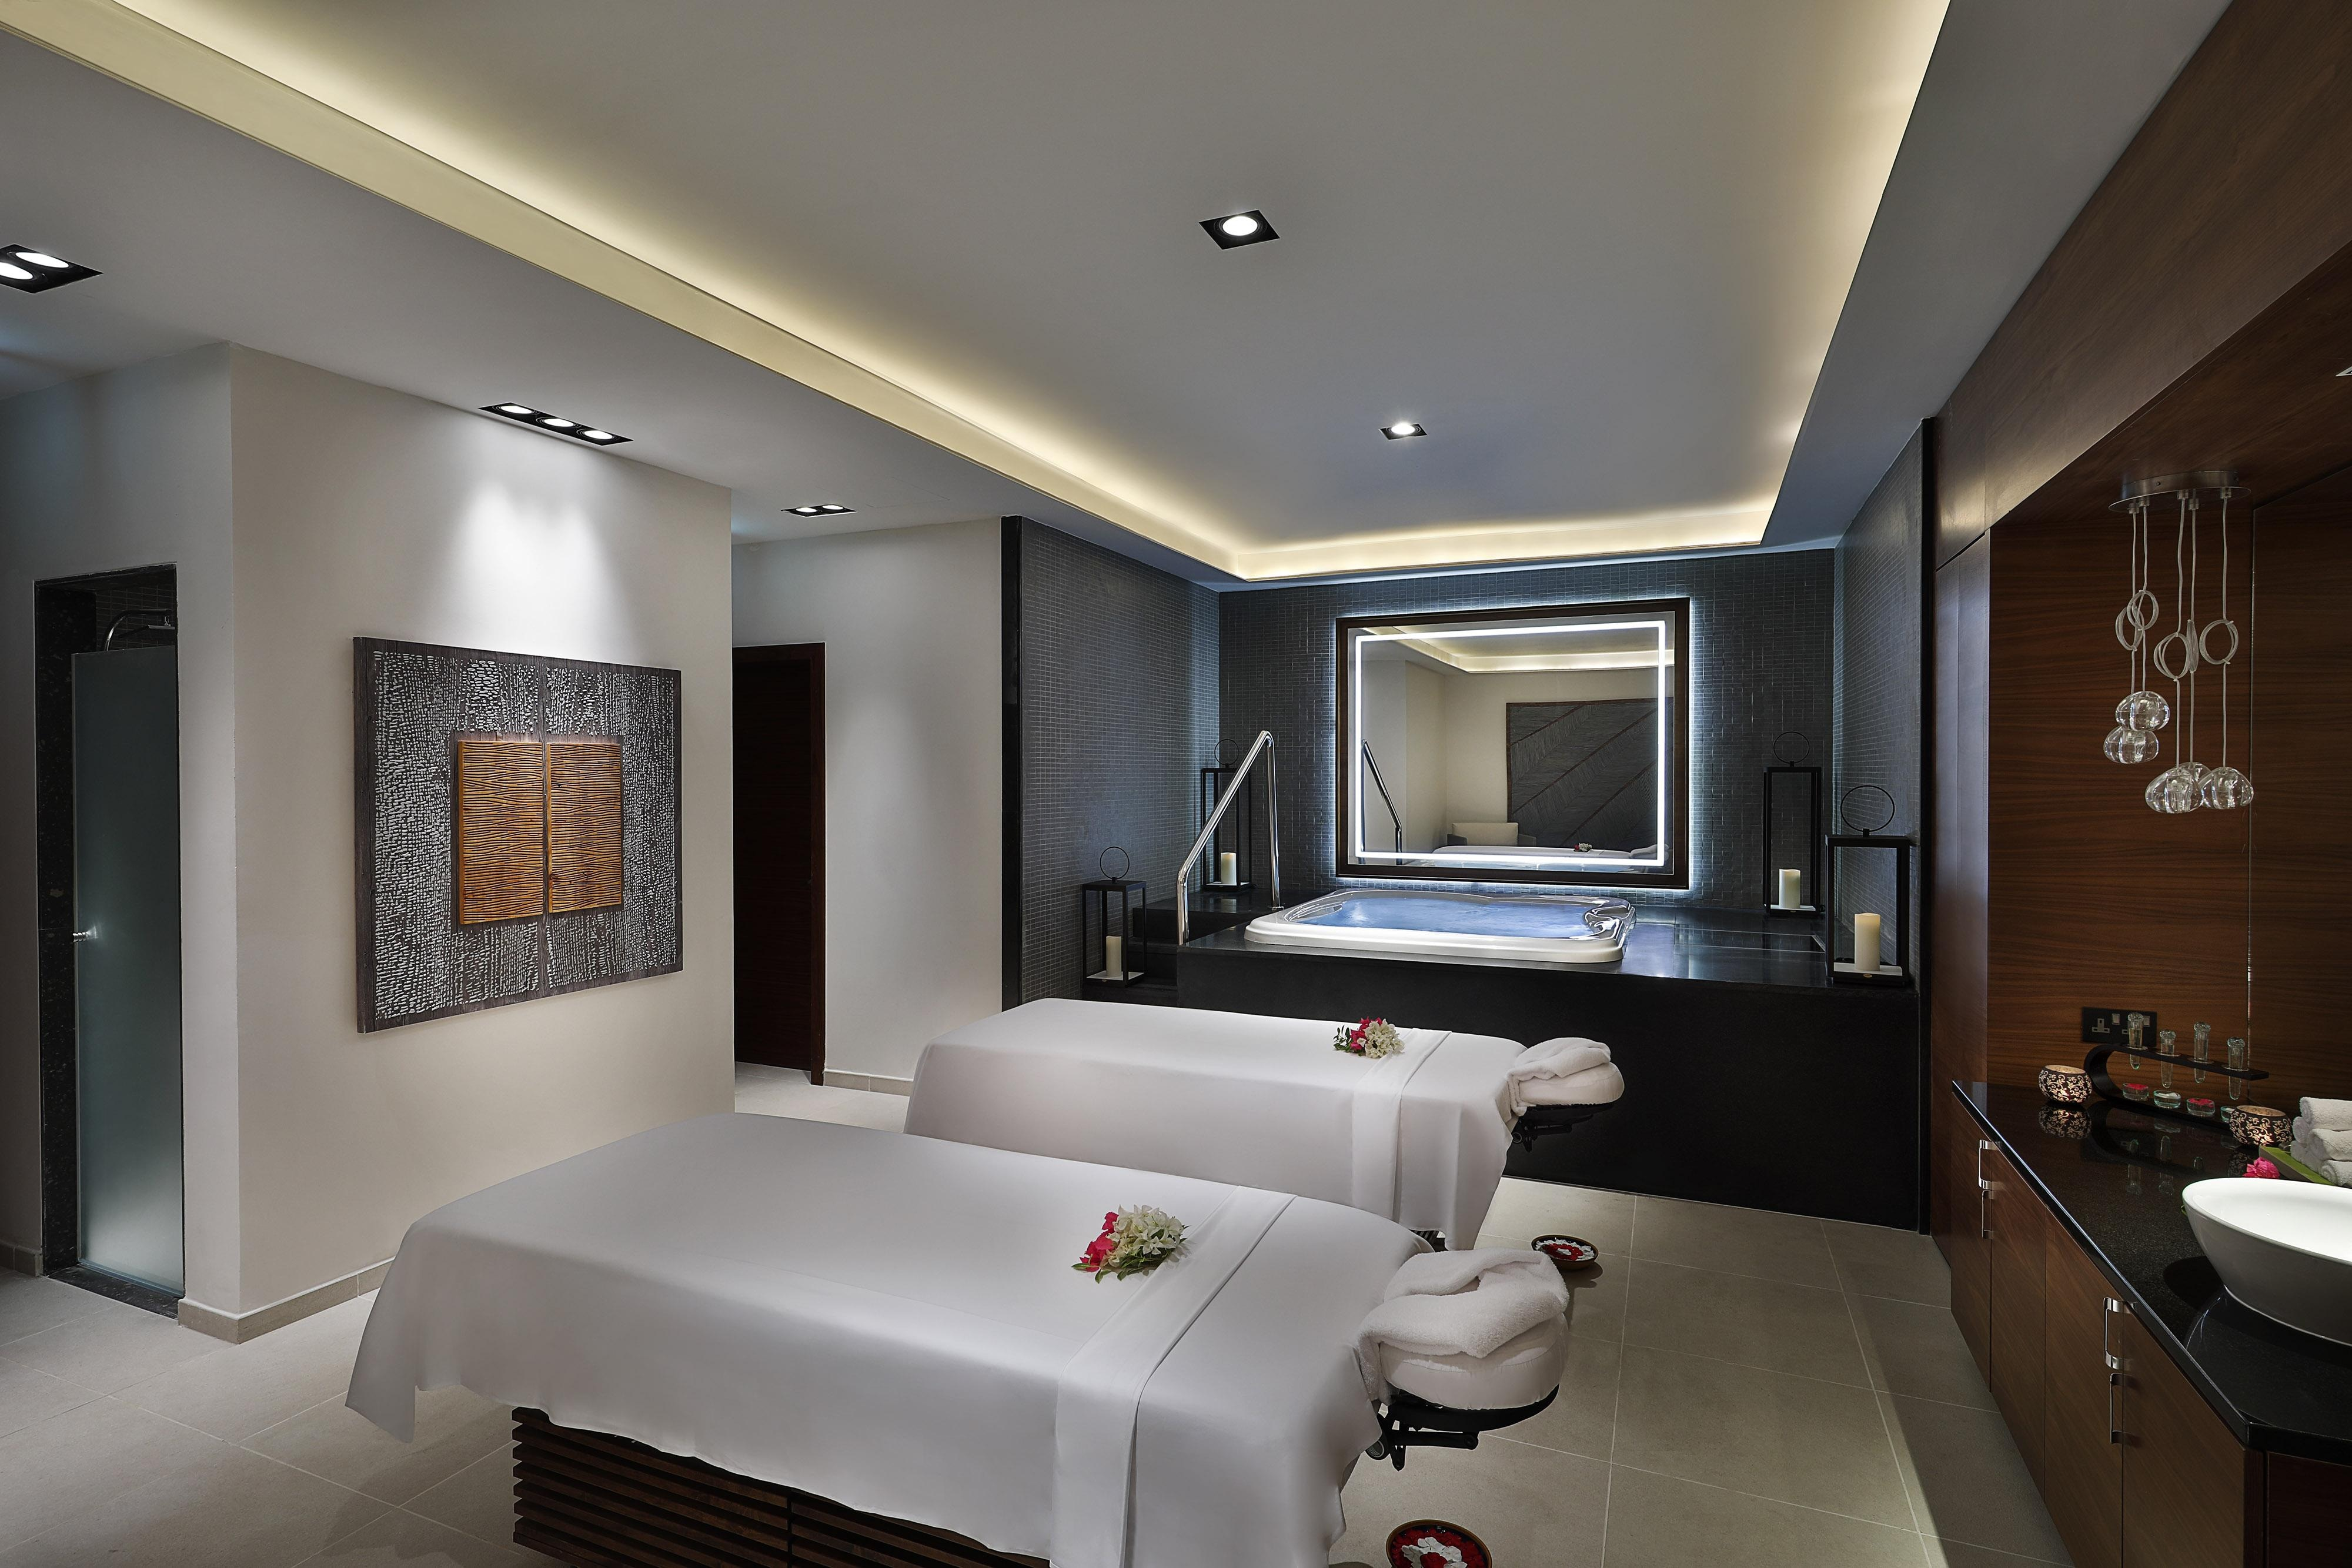 Experience an unforgettable signature massage in our exclusive couples treatment room.